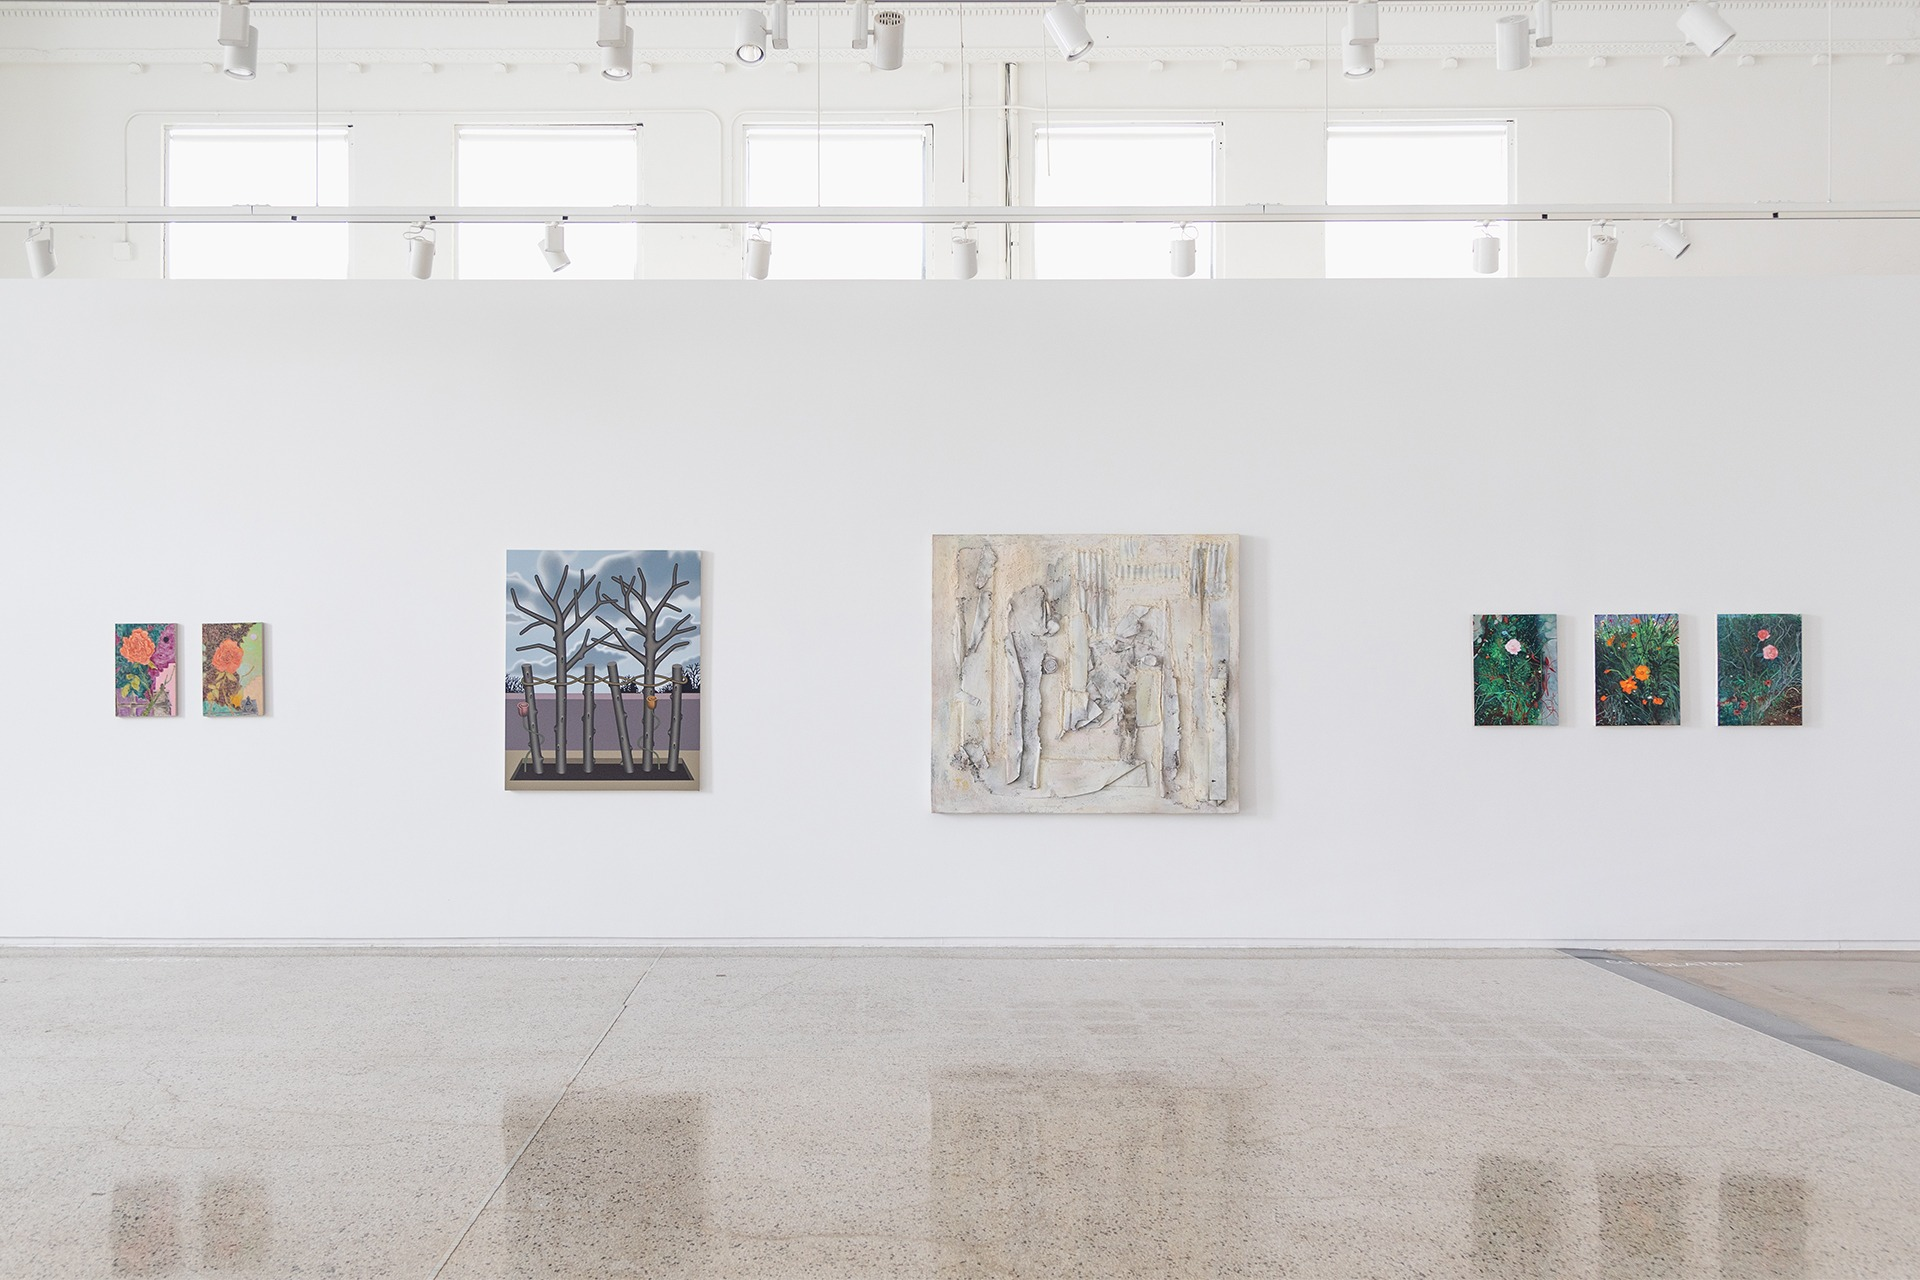 An installation view of the exhibition, The Language of Flowers, at MARCH x Reyes | Finn, Detroit, Michigan, in 2021.